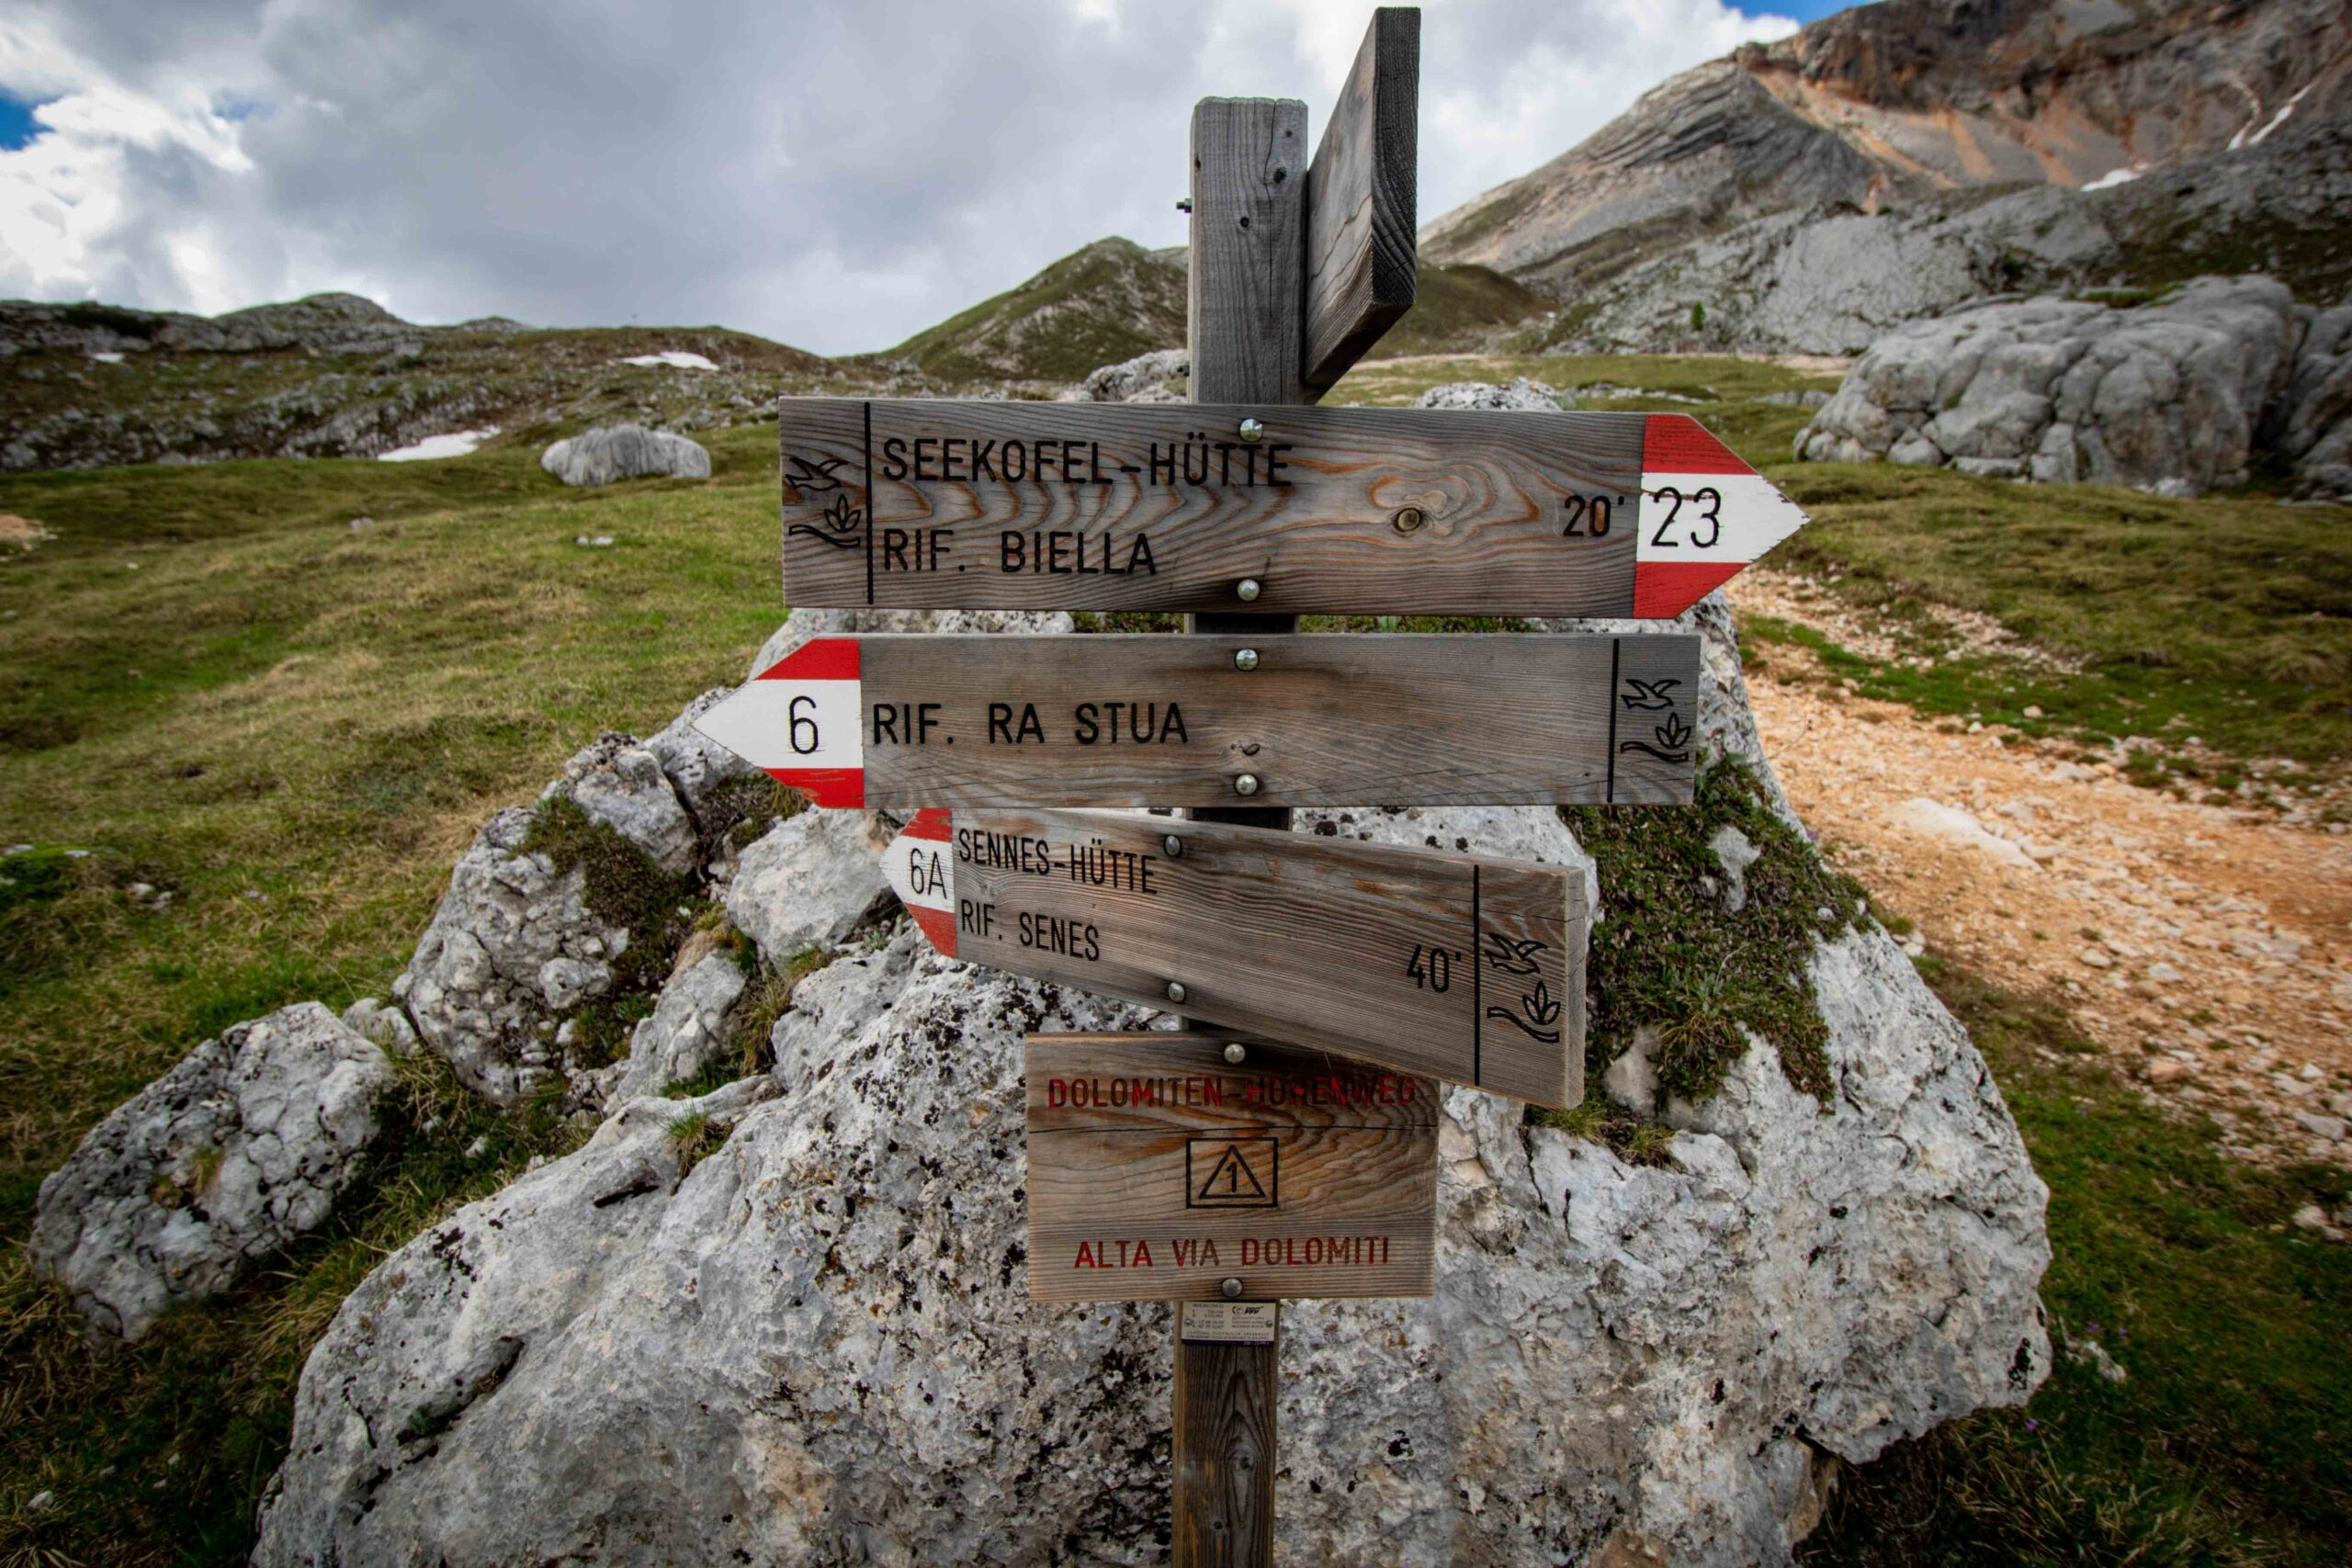 https://i1.wp.com/happytracks.ch/wp-content/uploads/2020/11/Hiking-Signs-in-the-Dolomites-scaled.jpg?fit=2560%2C1707&ssl=1